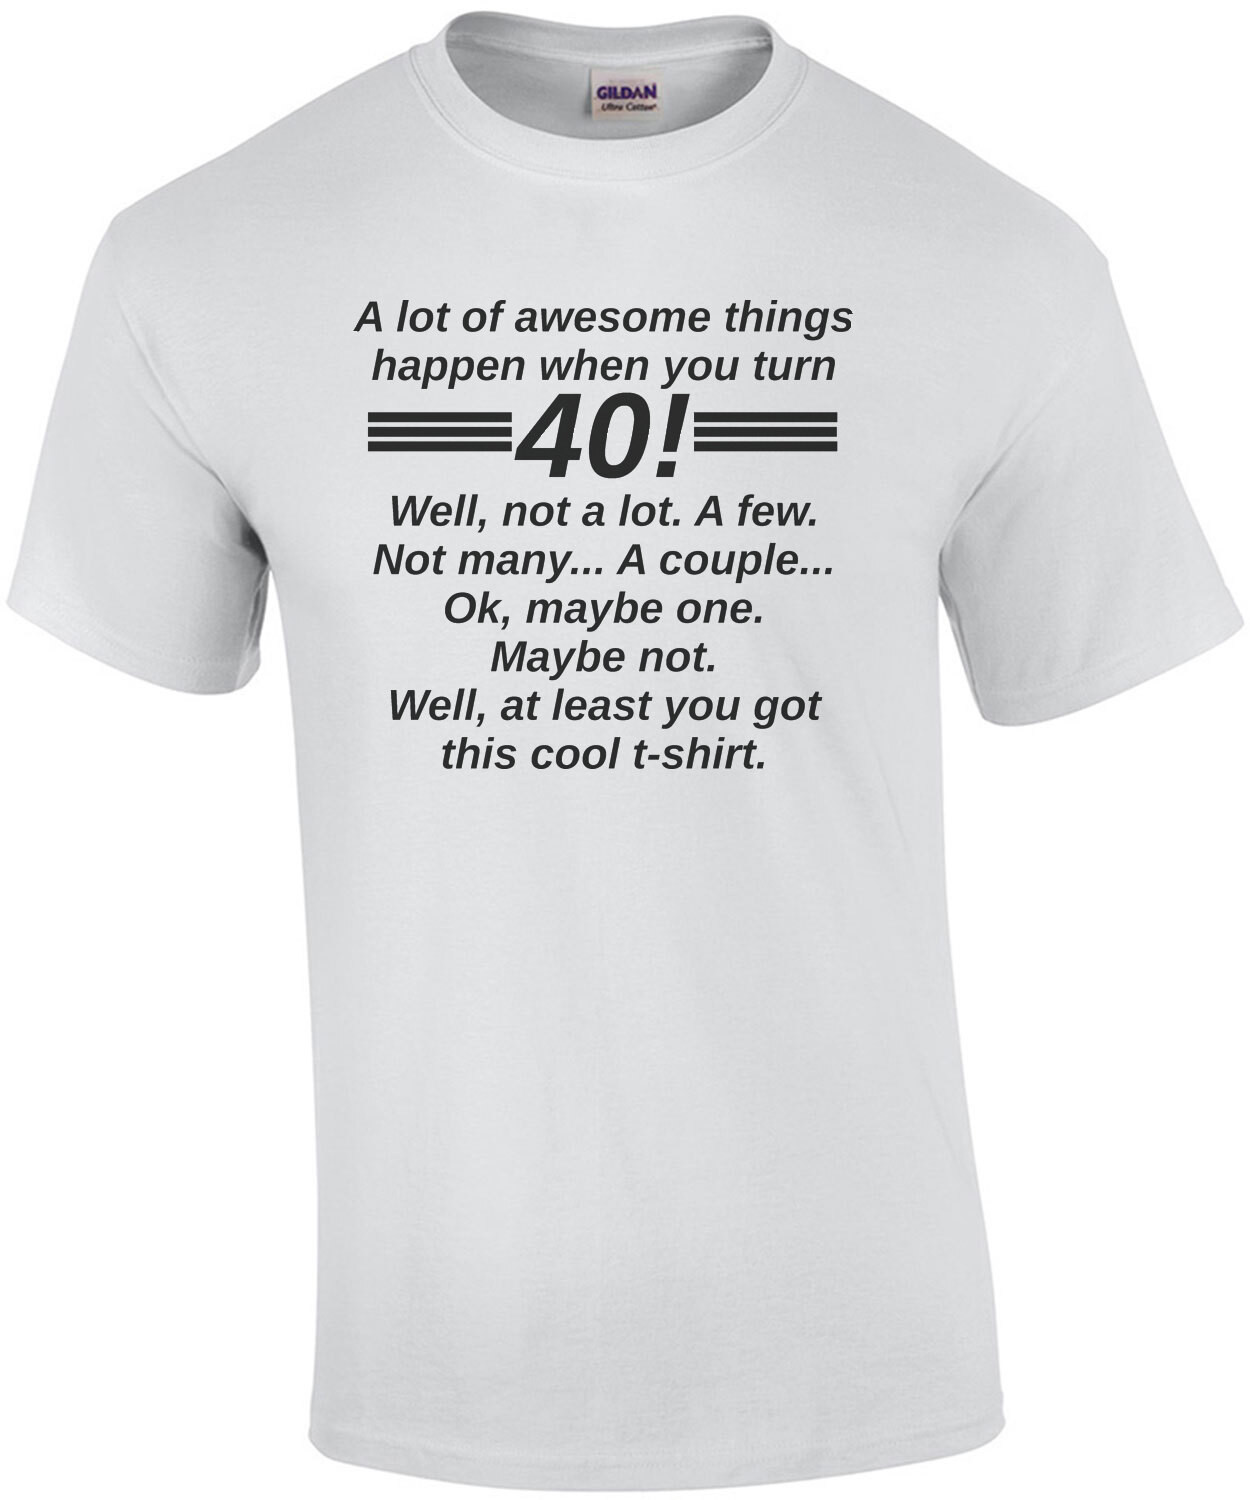 A lot of awesome things happen when you turn 40! Well, not a lot. A few. Not many... A couple... Ok, maybe one. Maybe not. Well, at least you got this cool t-shirt. 40th birthday t-shirt